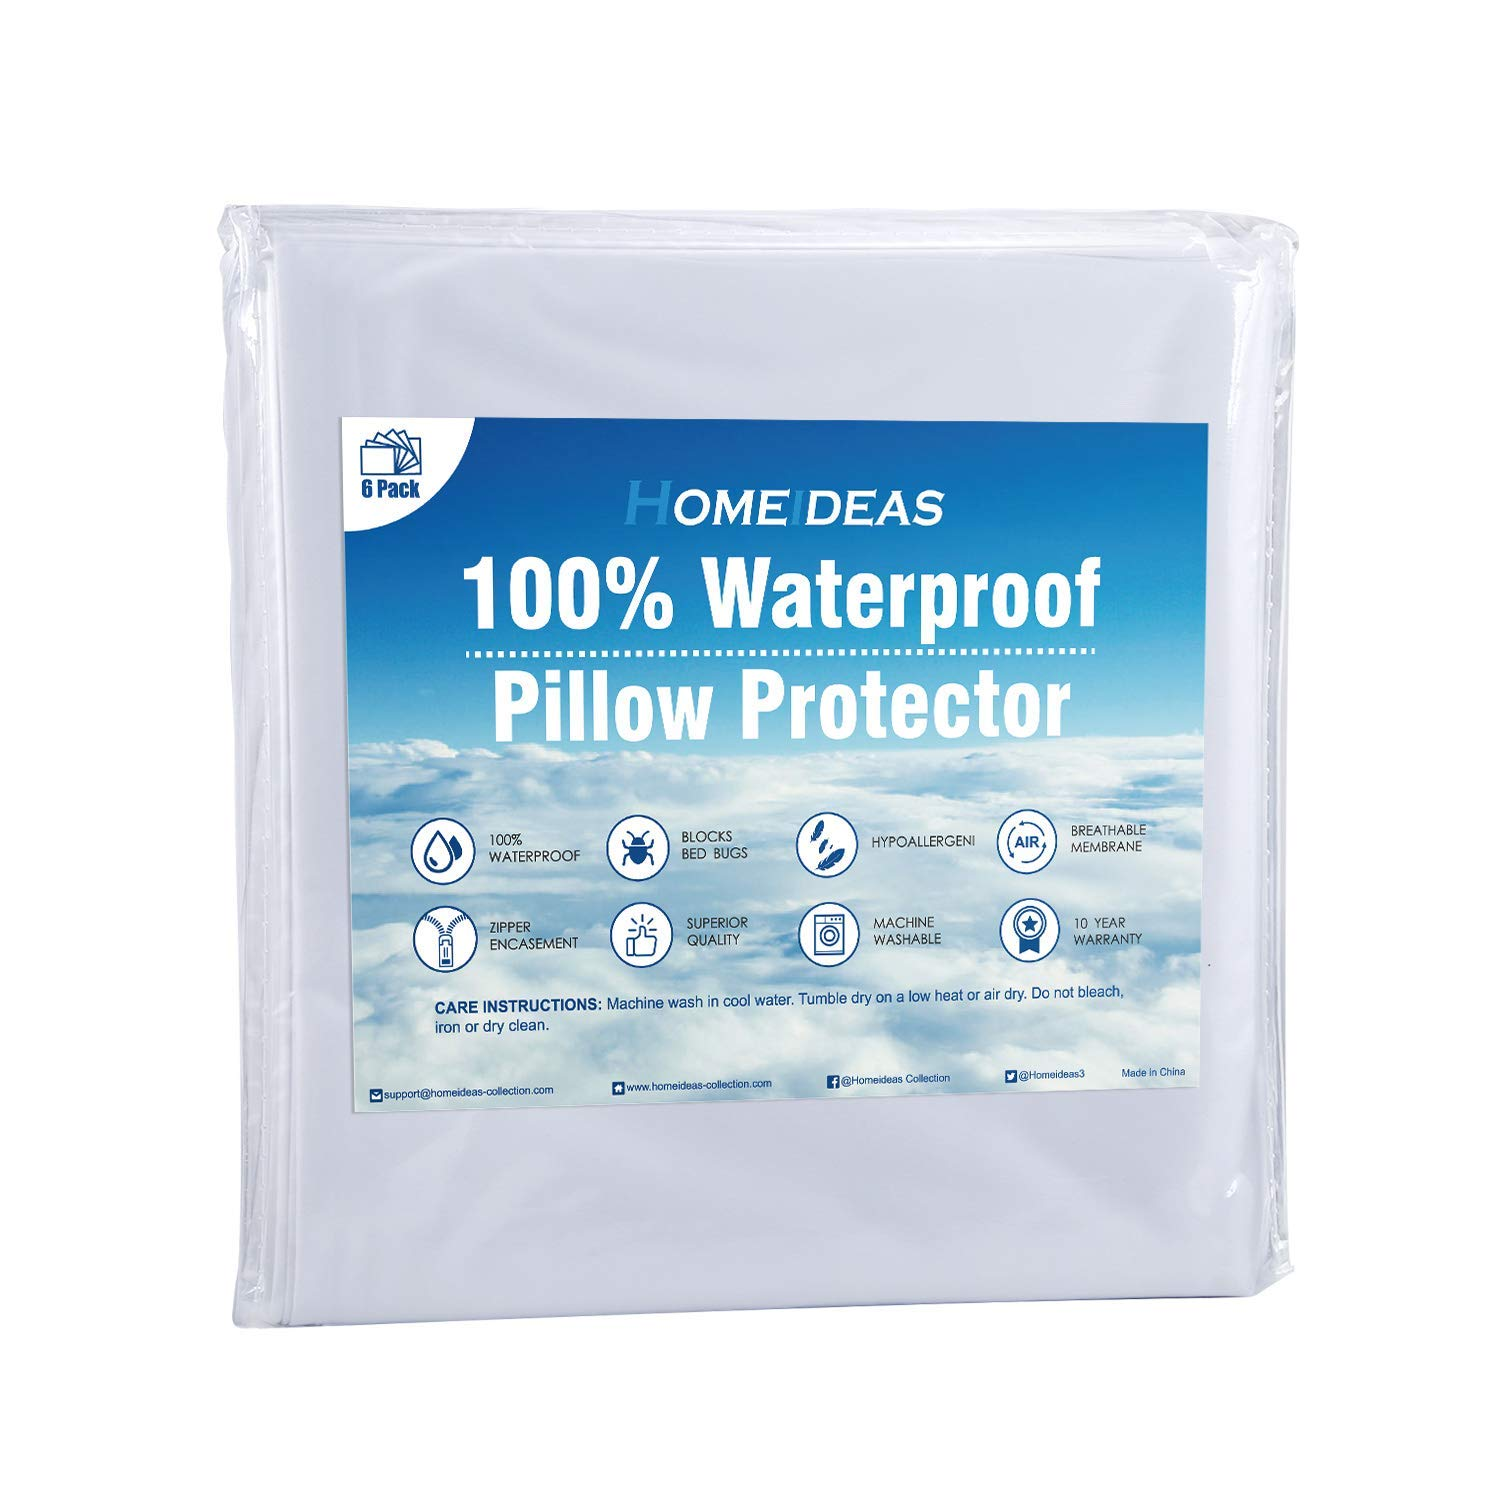 HOMEIDEAS 6-Pack Zippered Pillow Protector - 100% Waterproof - Hypoallergenic & Breathable Pillow Cover - Standard Size